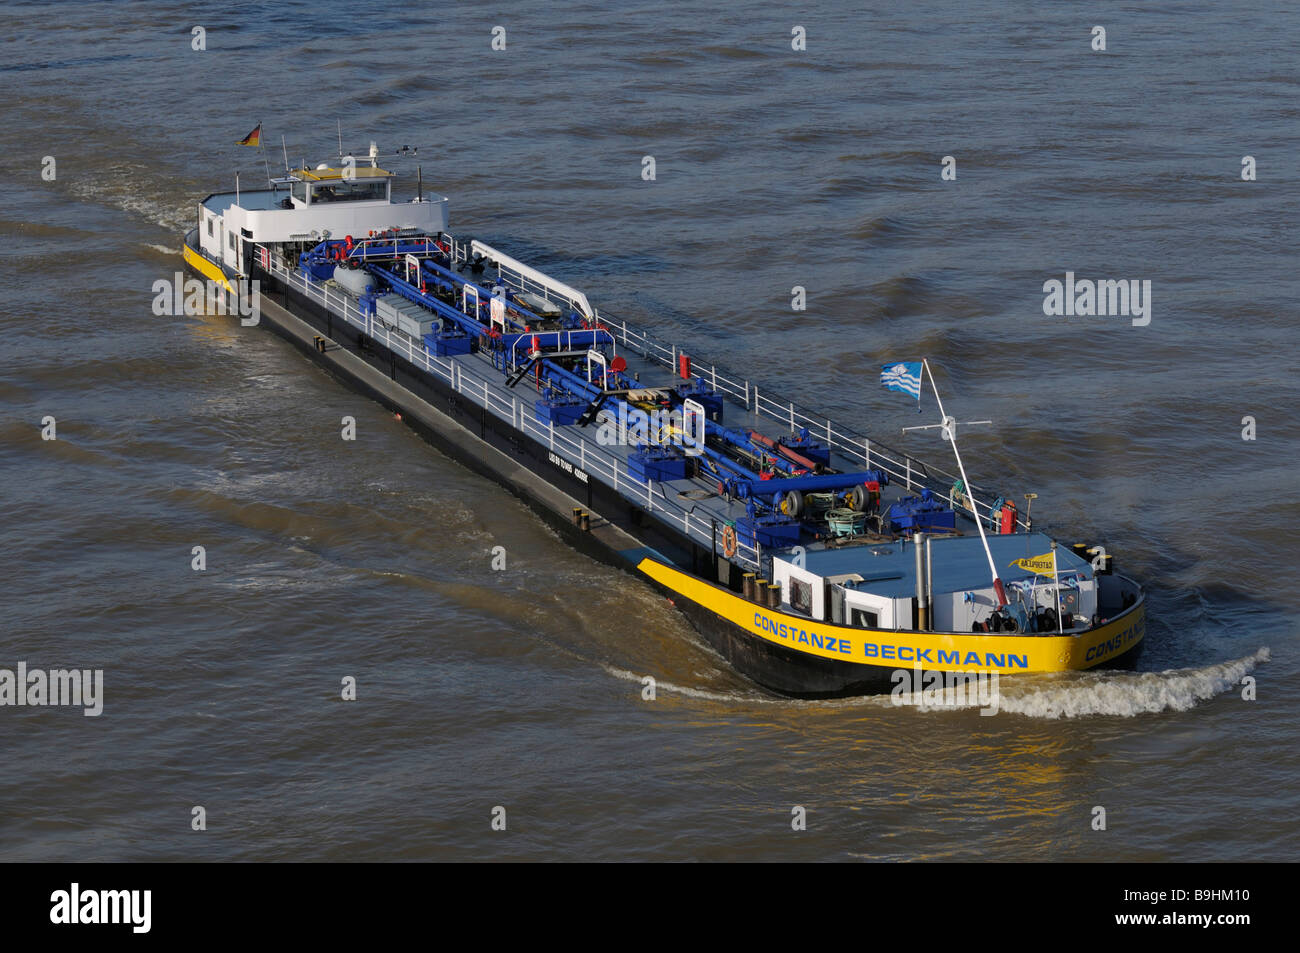 Gas tanker ship, Constanze Beckmann, on the Rhine in North Rhine-Westphalia, Germany, Europe - Stock Image